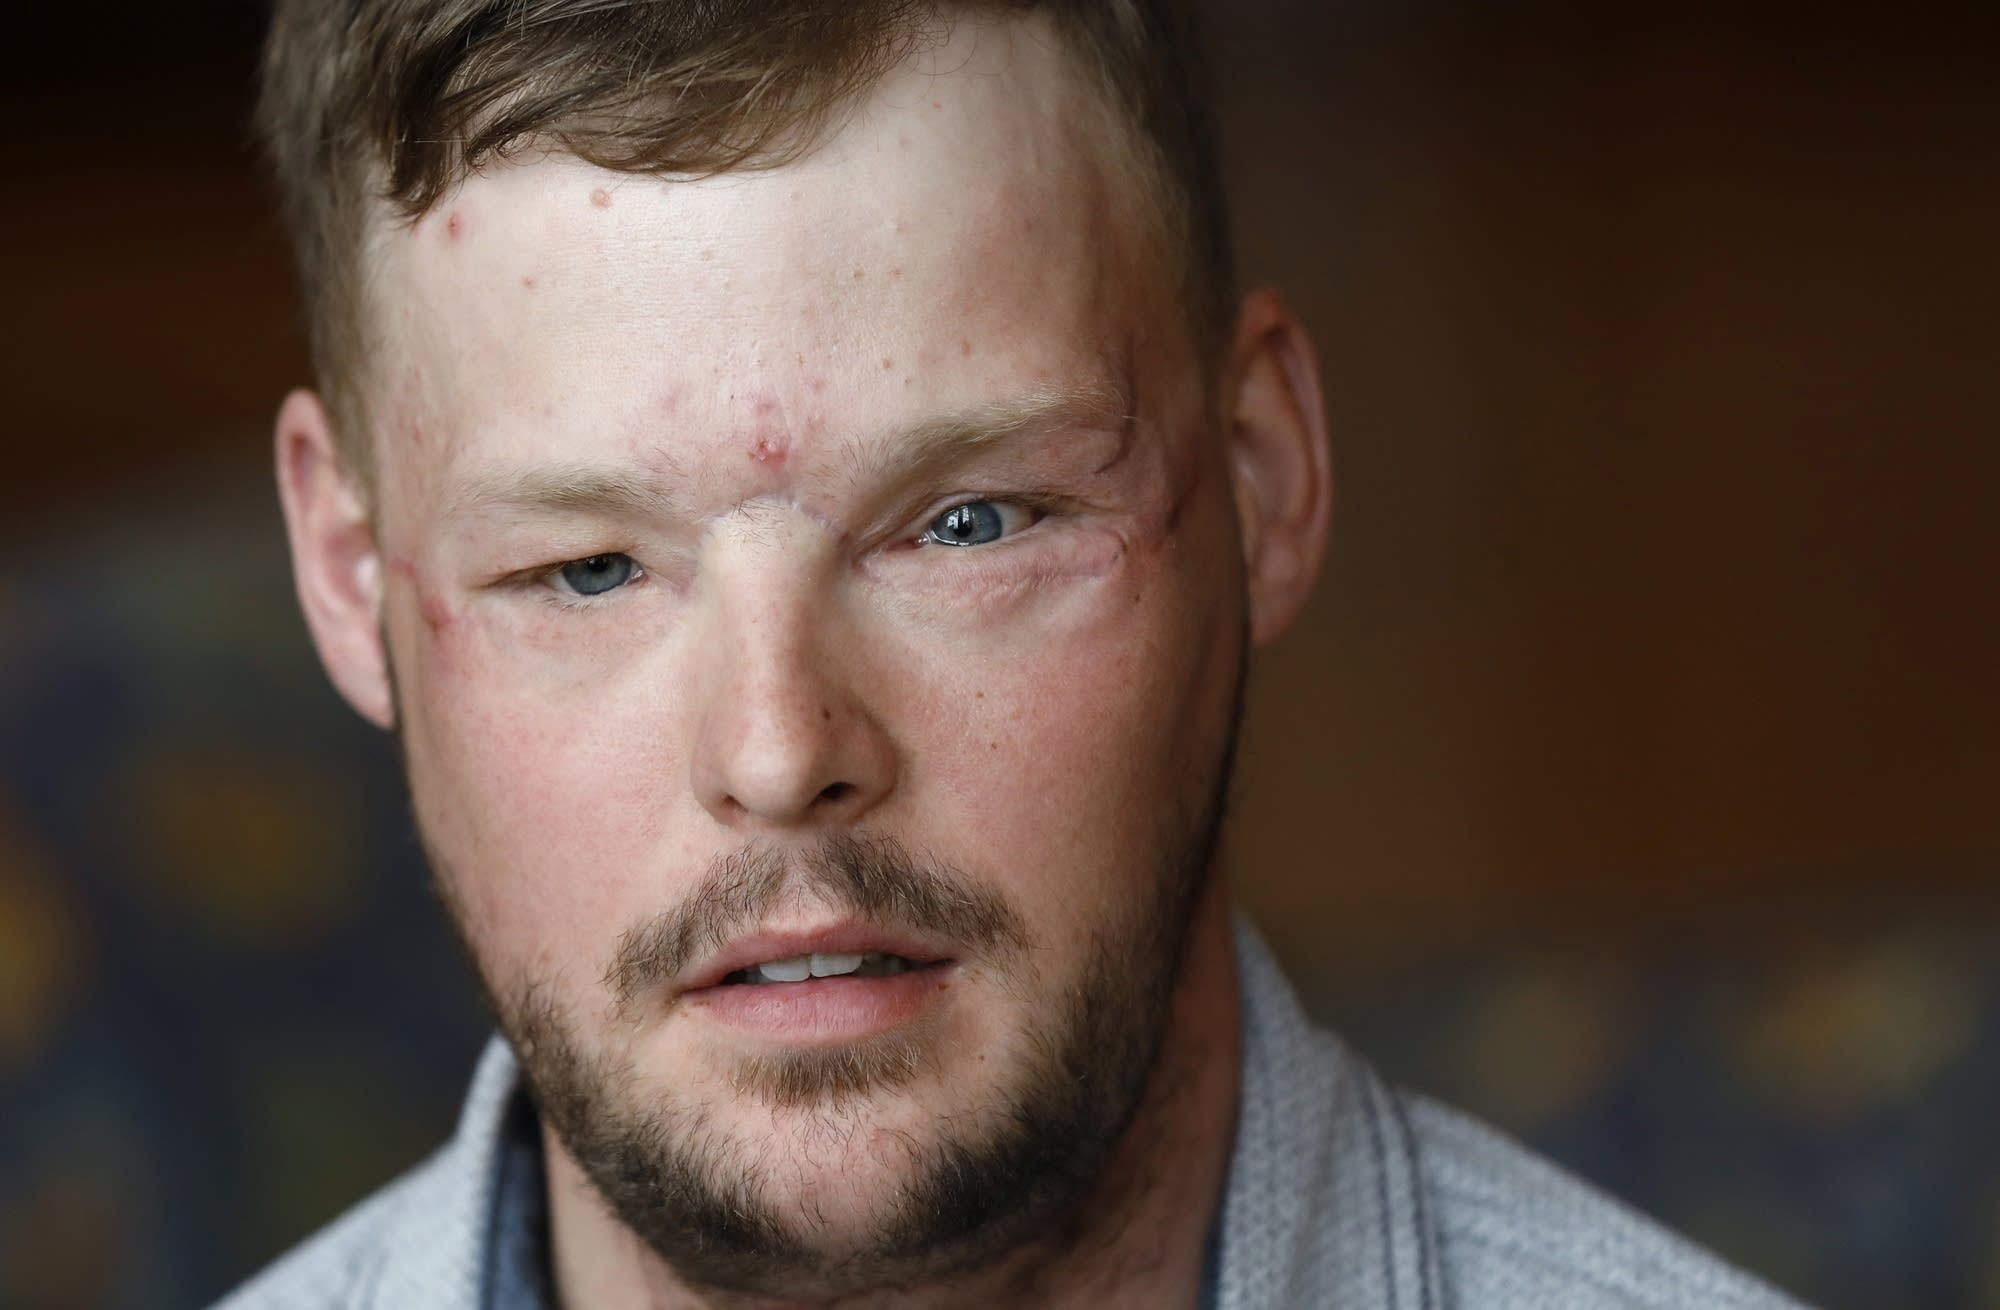 Face transplant recipient Andy Sandness.